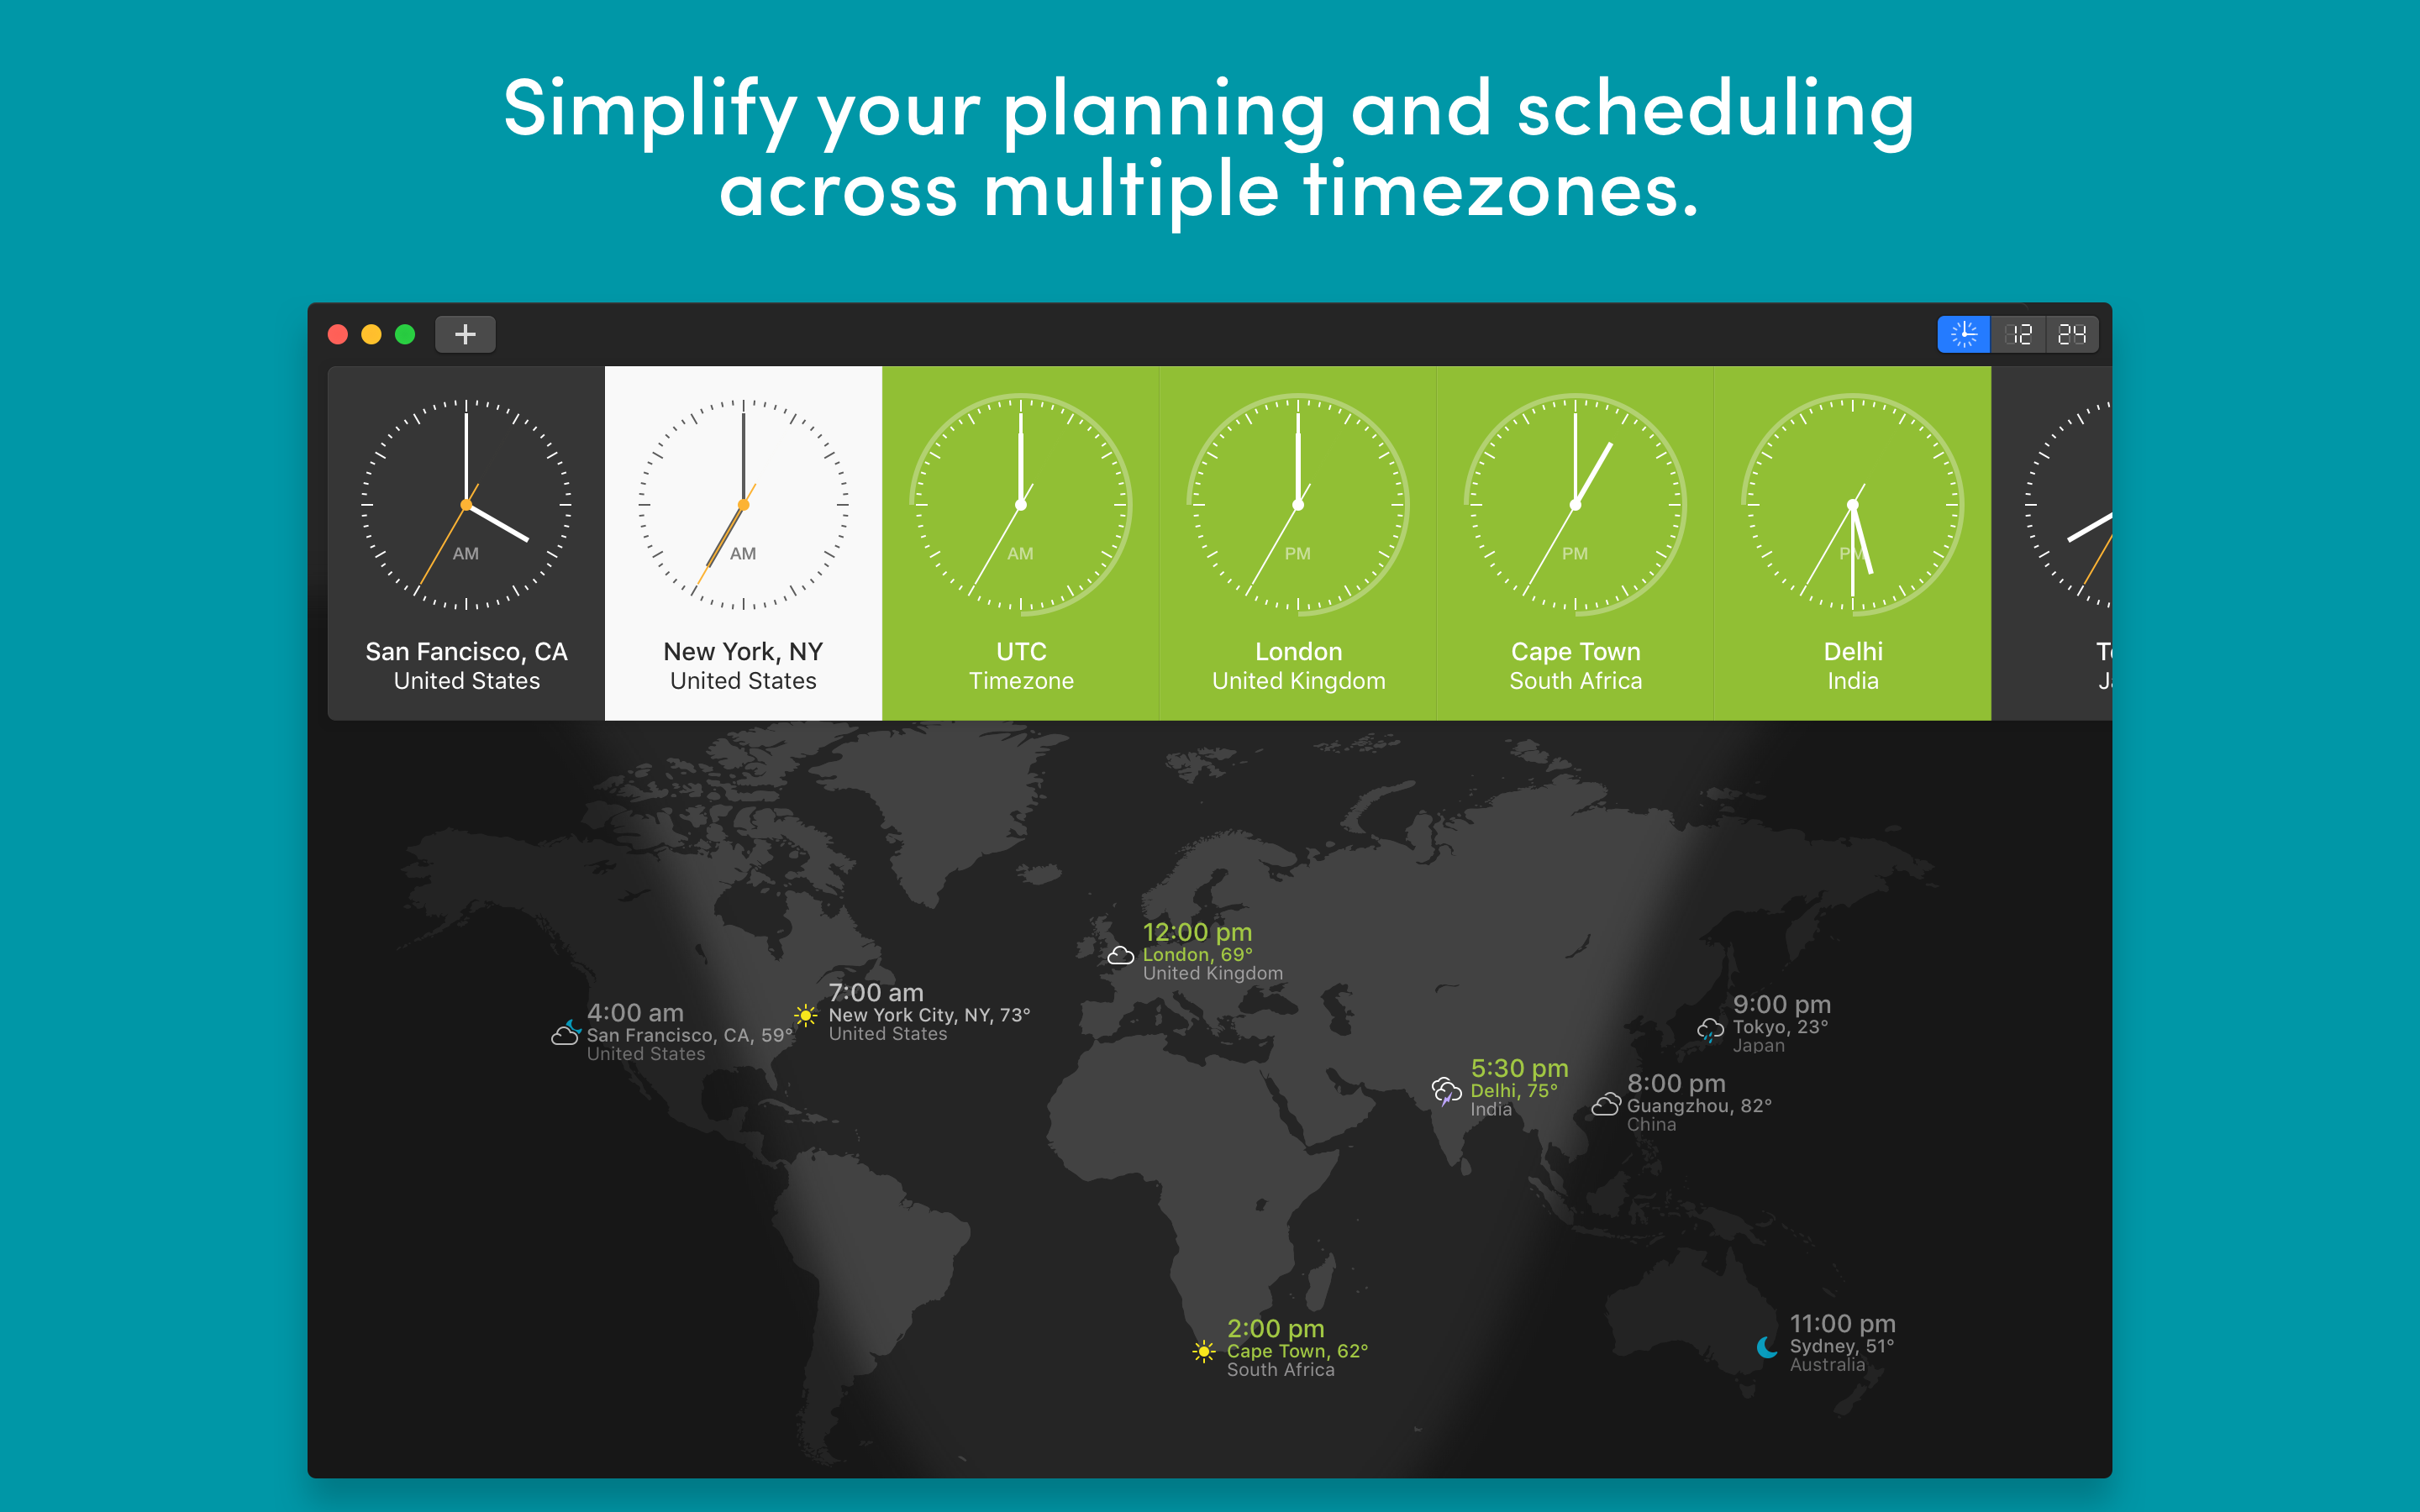 Simplify your planning and scheduling across multiple timezones.